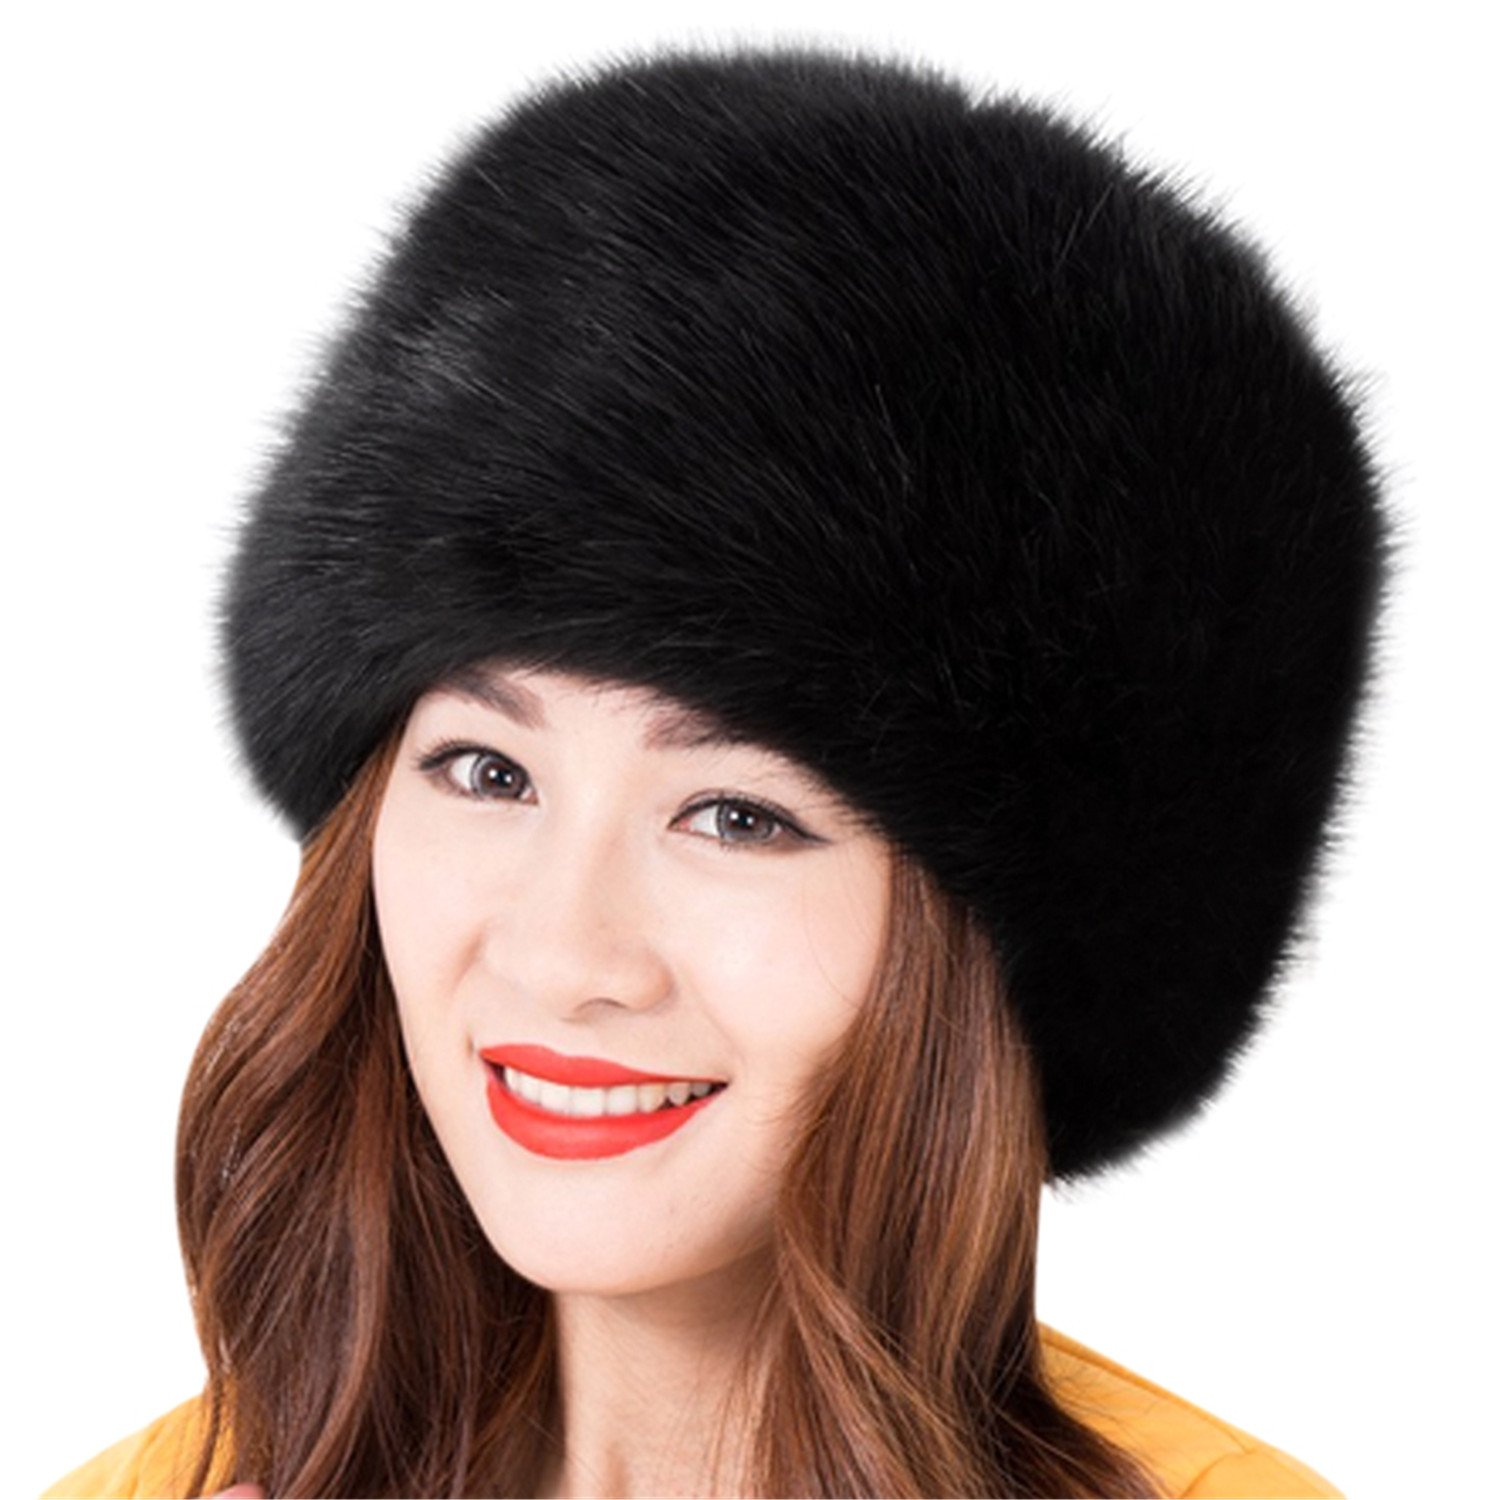 03515486332ccc Amazon.com : Miki Da Unisex NEW Winter Warm Faux Rabbit Fur Hat Russian  Style Mens Womens Cossack Caps Fluffy Beanies Mink Fur Skullies 08 : Sports  & ...